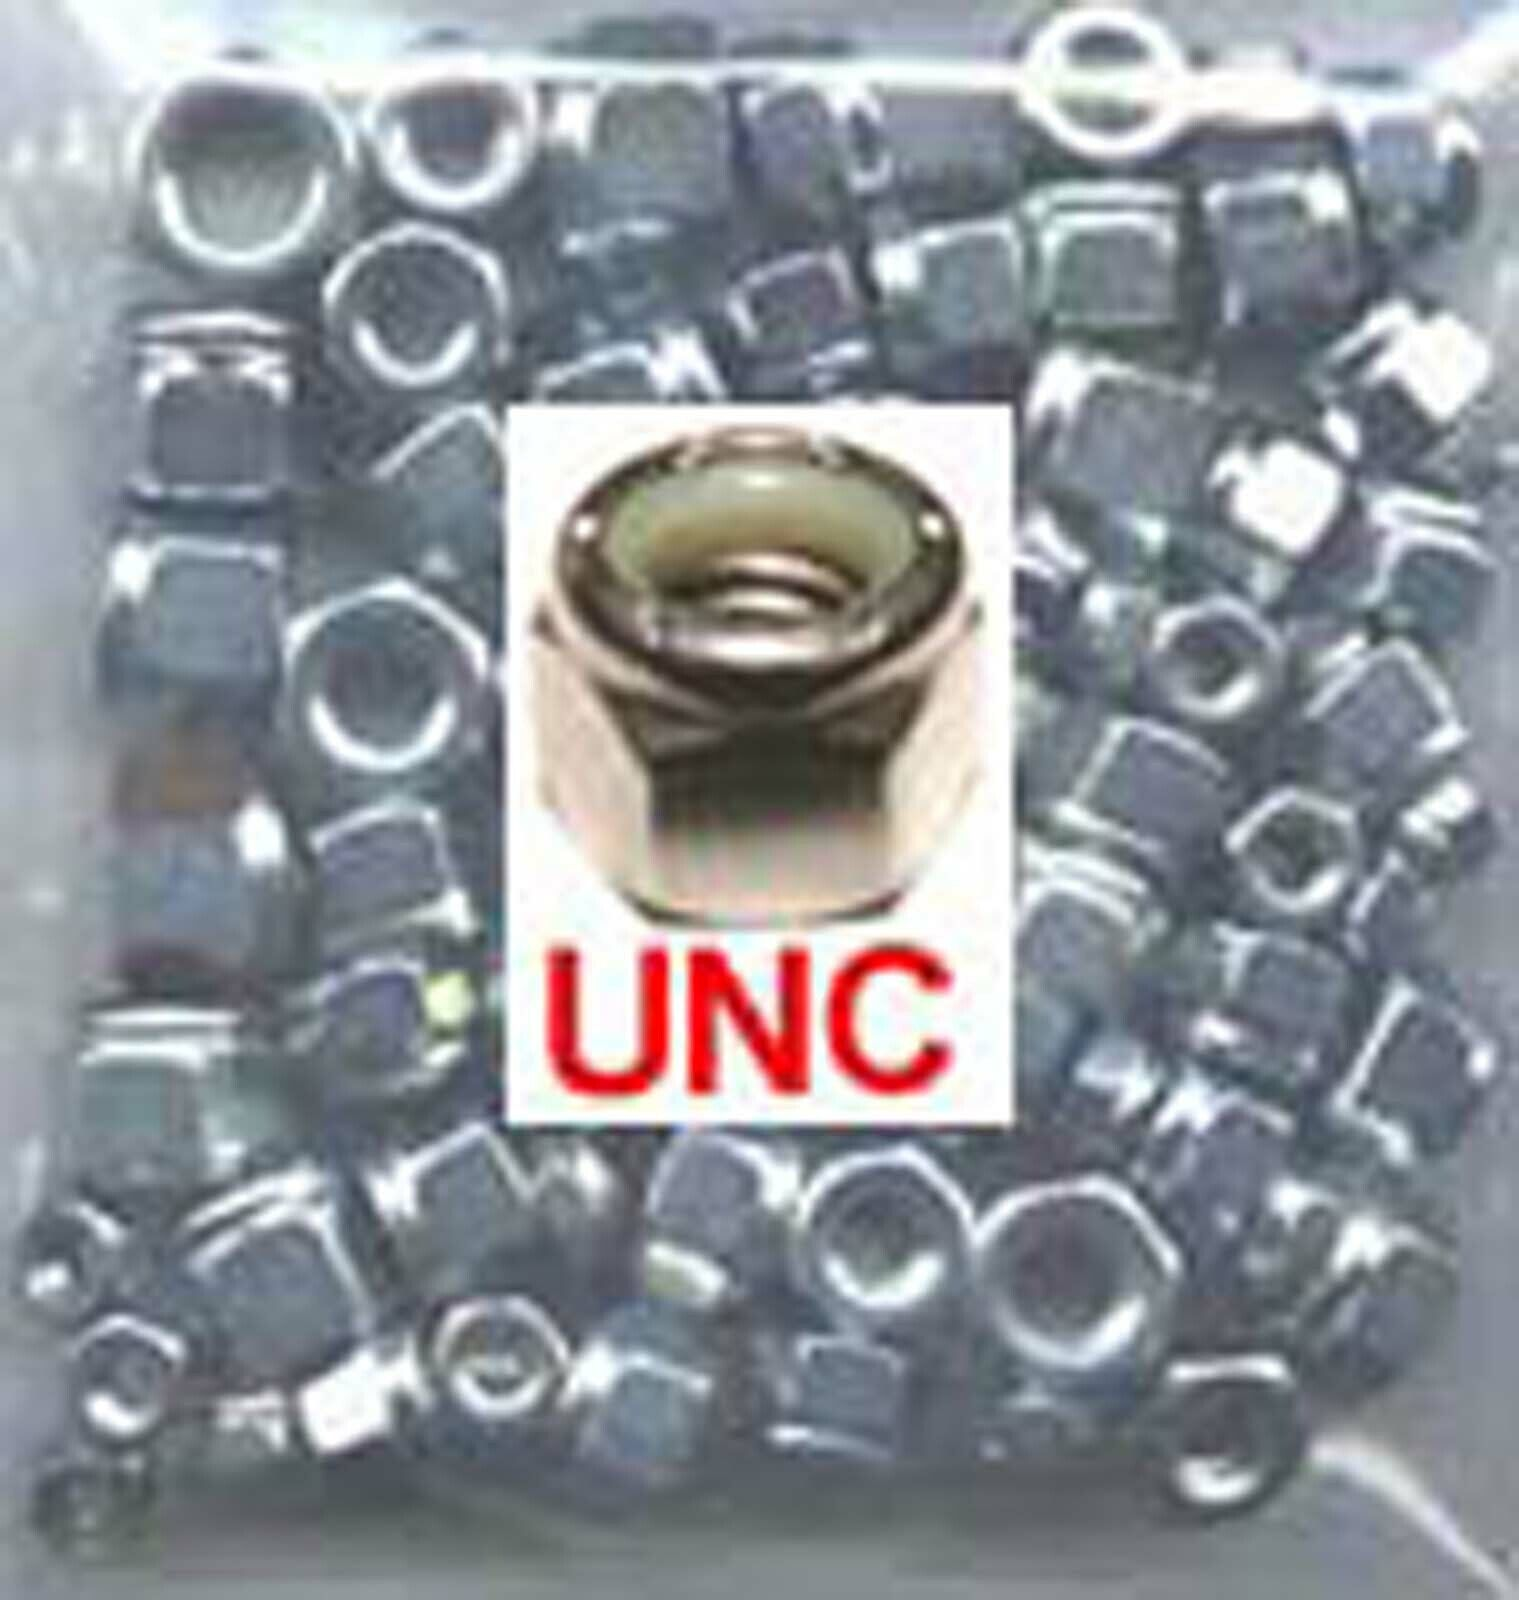 Stainless UNC Nyloc Nuts - 1/4, 5/16, 3/8 UNC Nylock Nuts - mixed pack x50